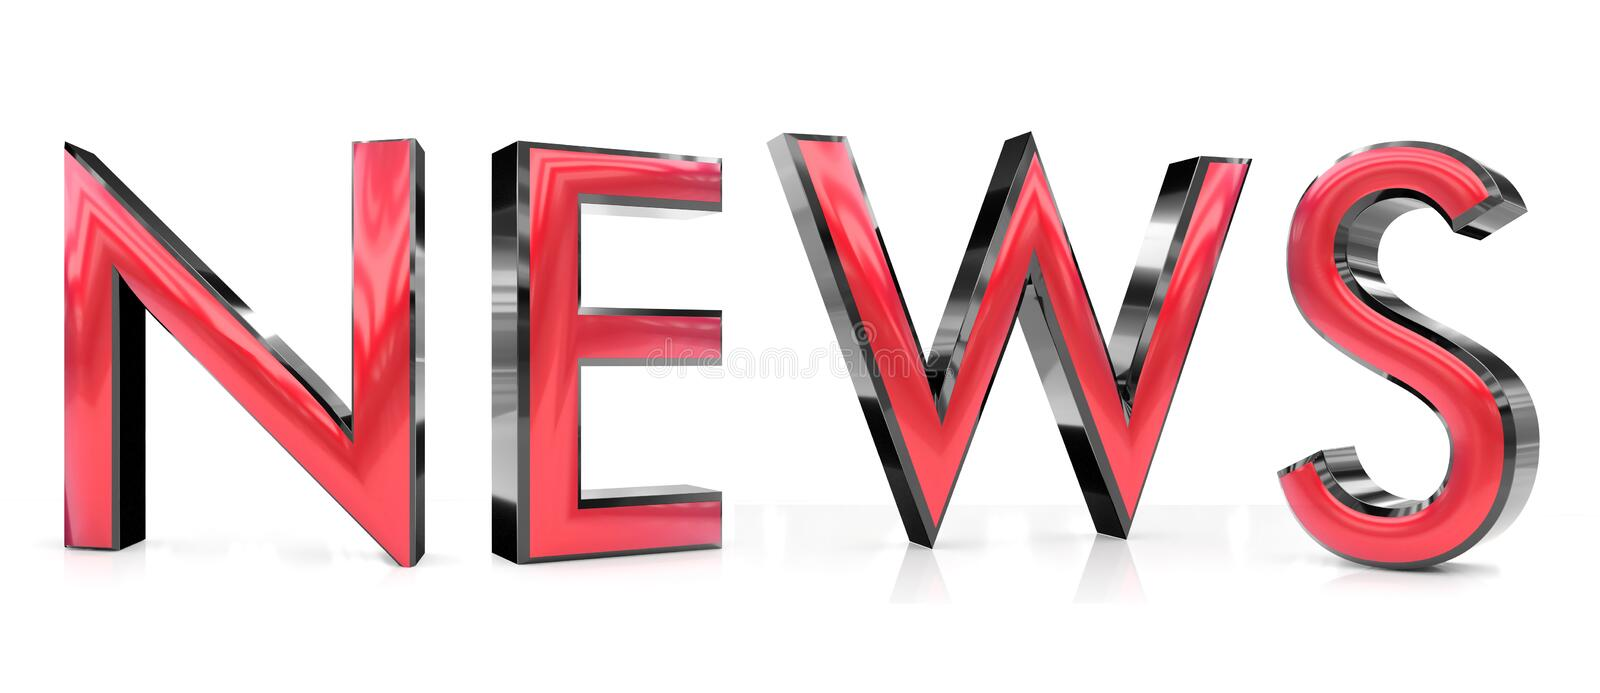 News 3d word. The news word 3d rendered red and gray metallic color , isolated on white background royalty free illustration